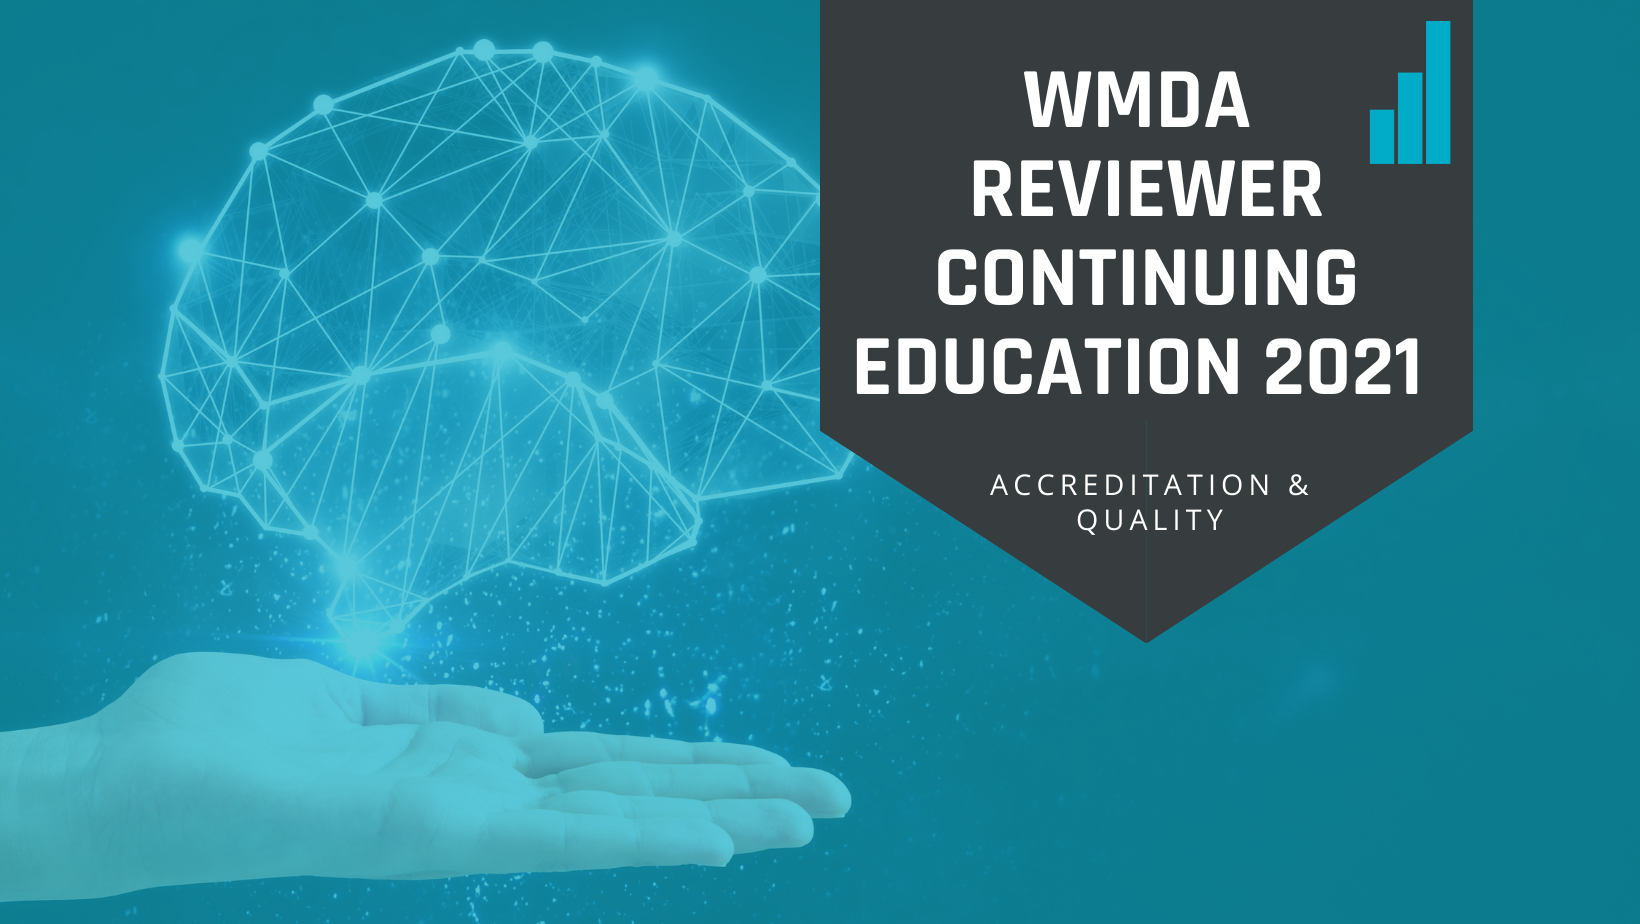 WMDA Reviewer continuing education 2021